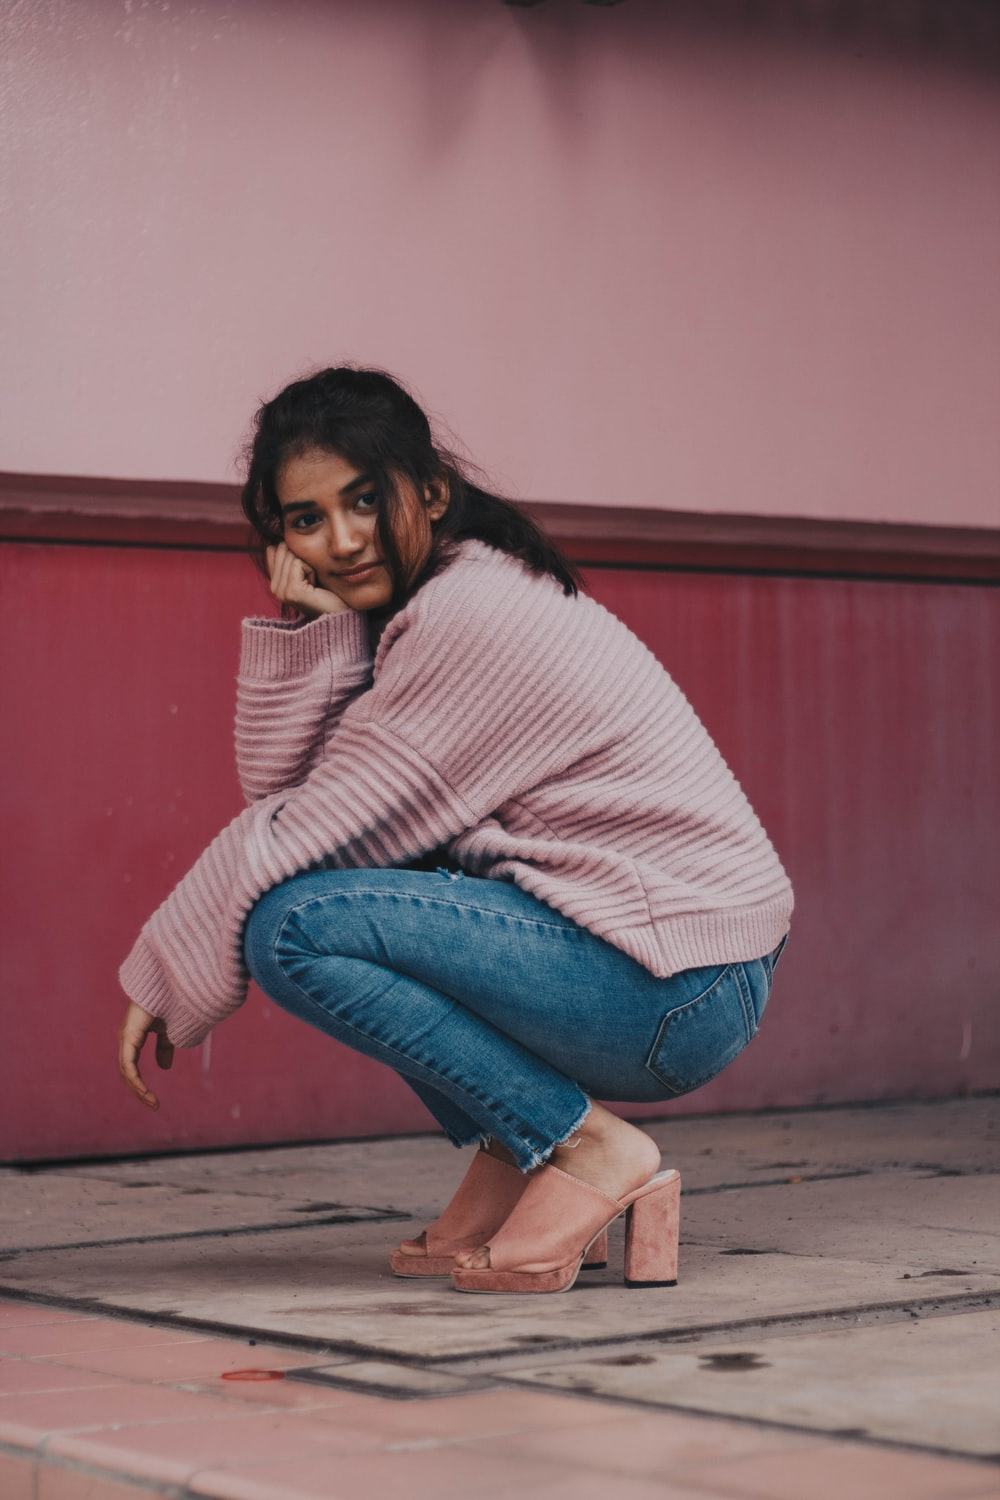 photography of woman in pink sweater and blue jeans docking